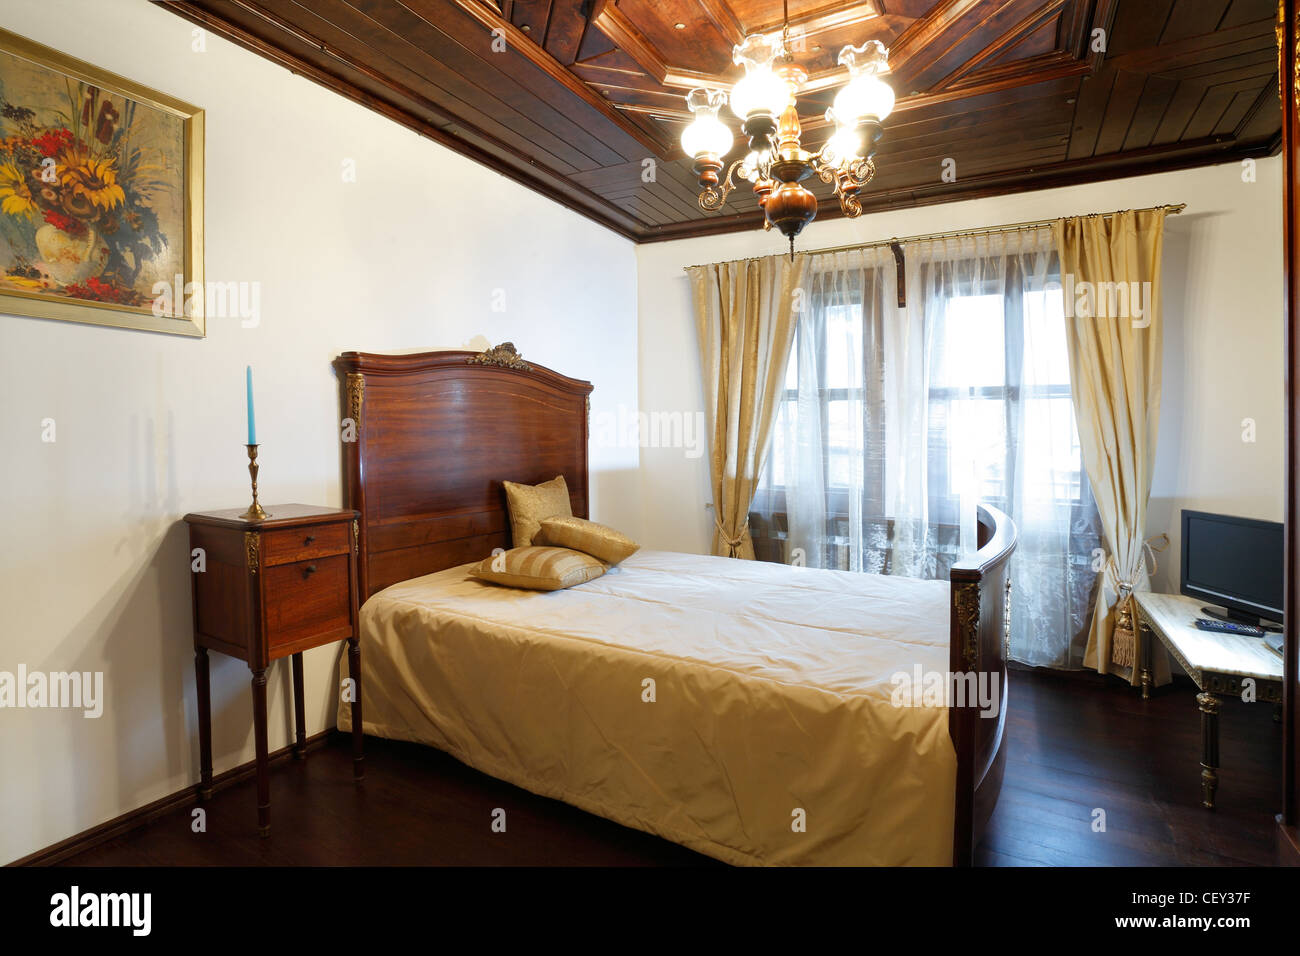 Old Style Bedroom Furniture Bedroom With Old Style Wooden Furniture Hotel Room Interior Stock